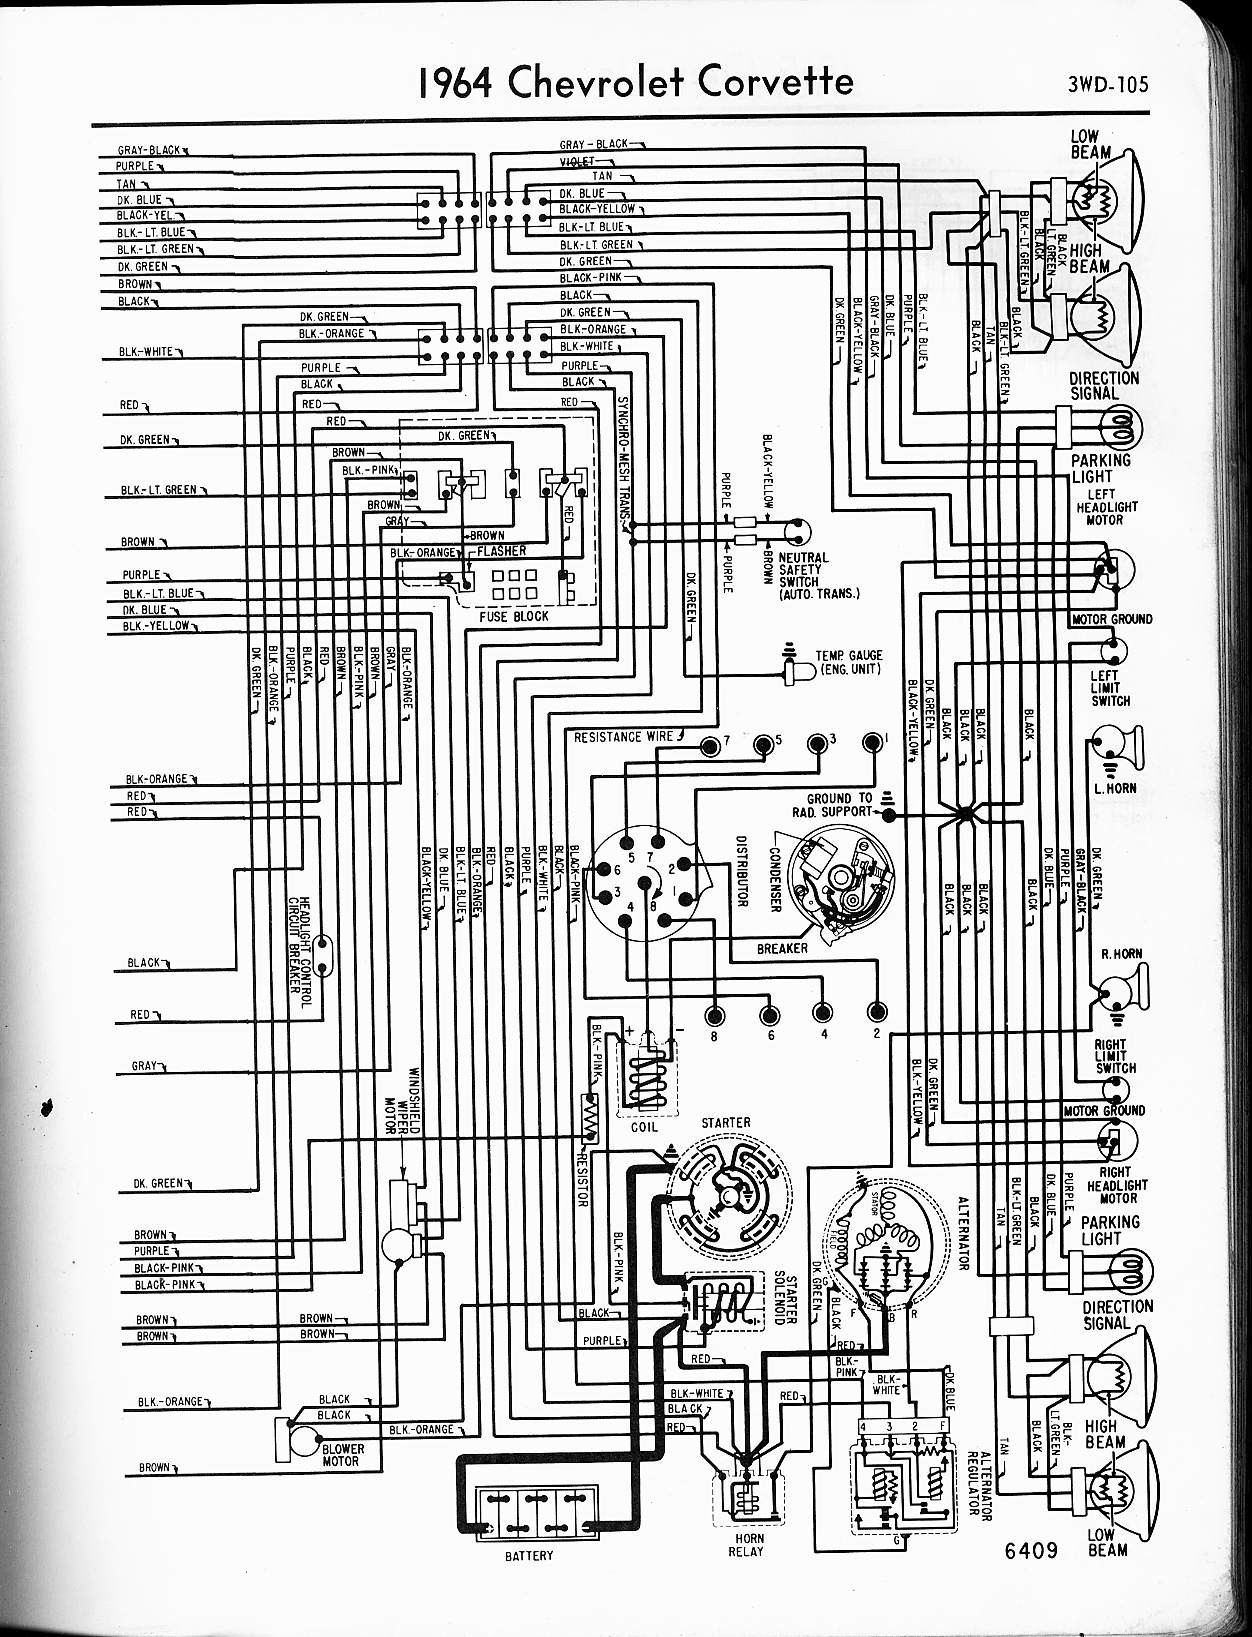 Scout Ii Ignition Switch Diagram Wiring Will Be A Thing 1973 International 2 Harness 81 Corvette Schematics Best Site Craftsman